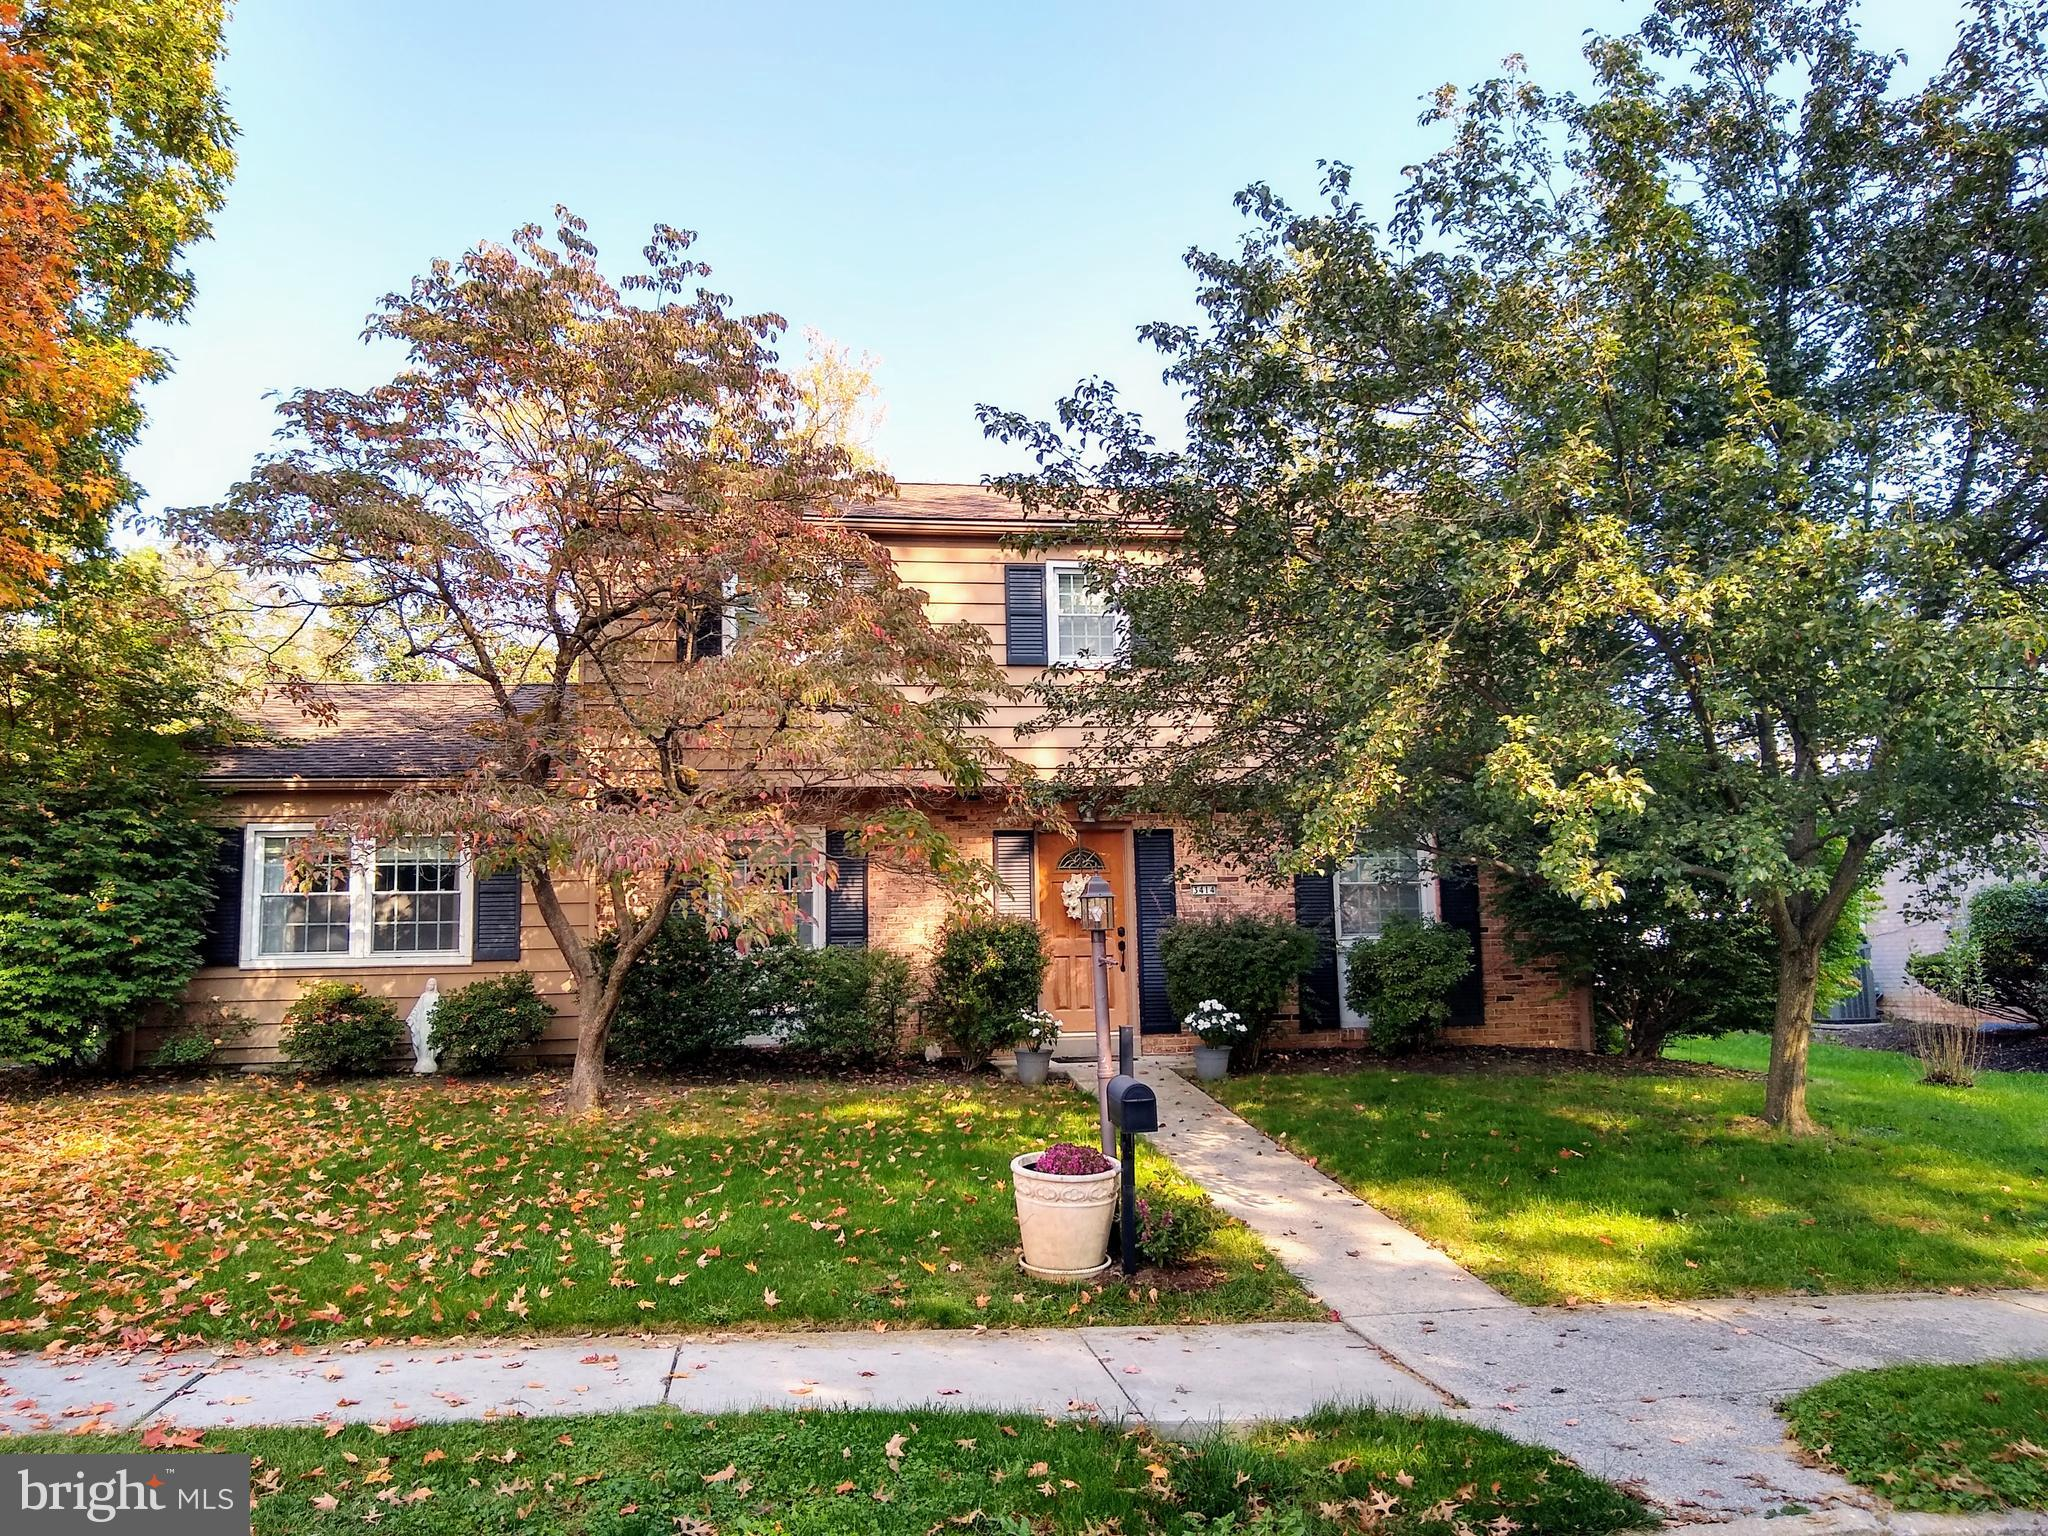 3414 Canby Street, Harrisburg, PA 17109